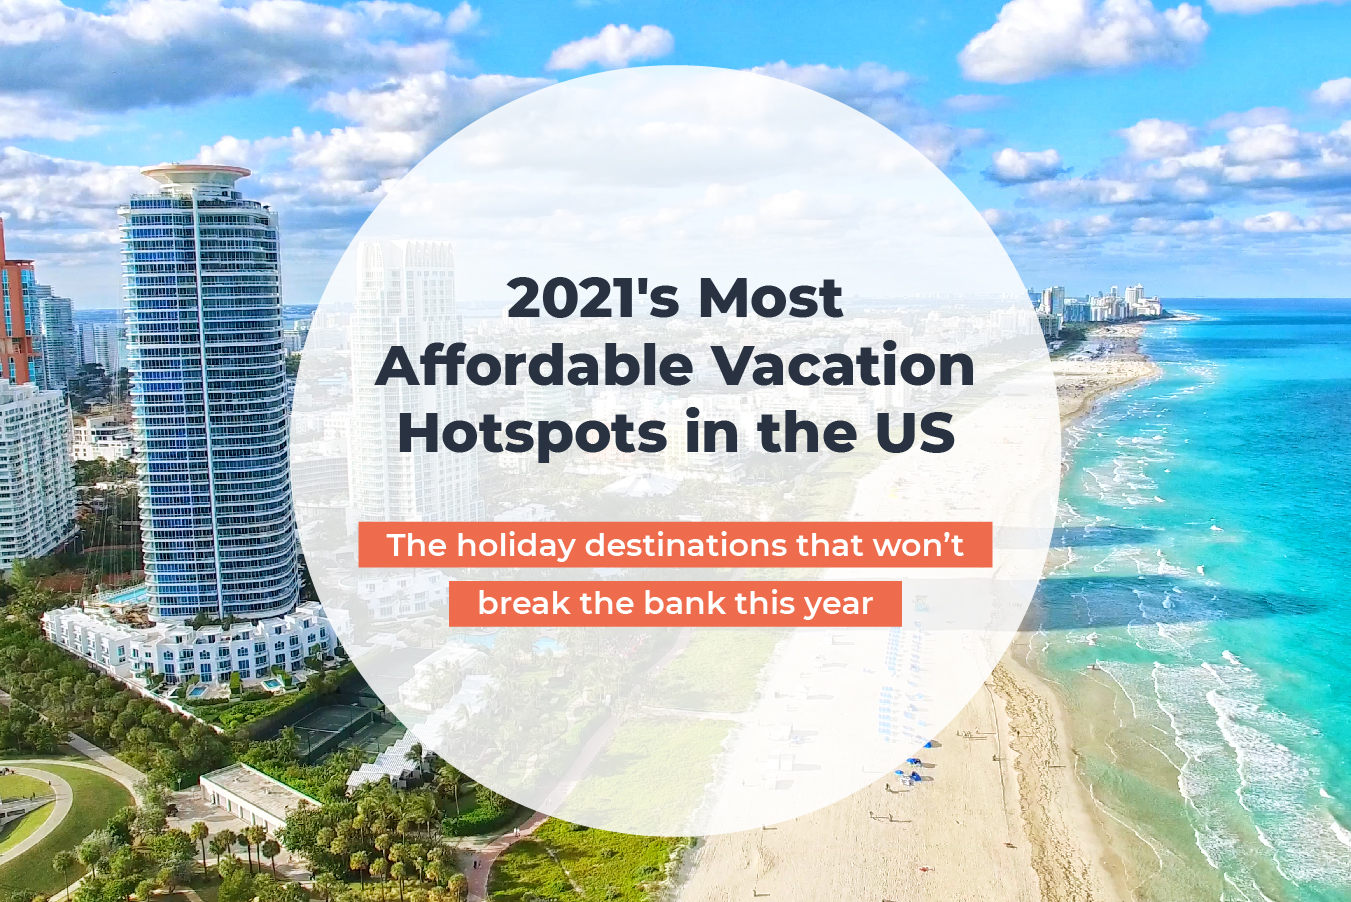 Holiday Destinations that won't break the bank